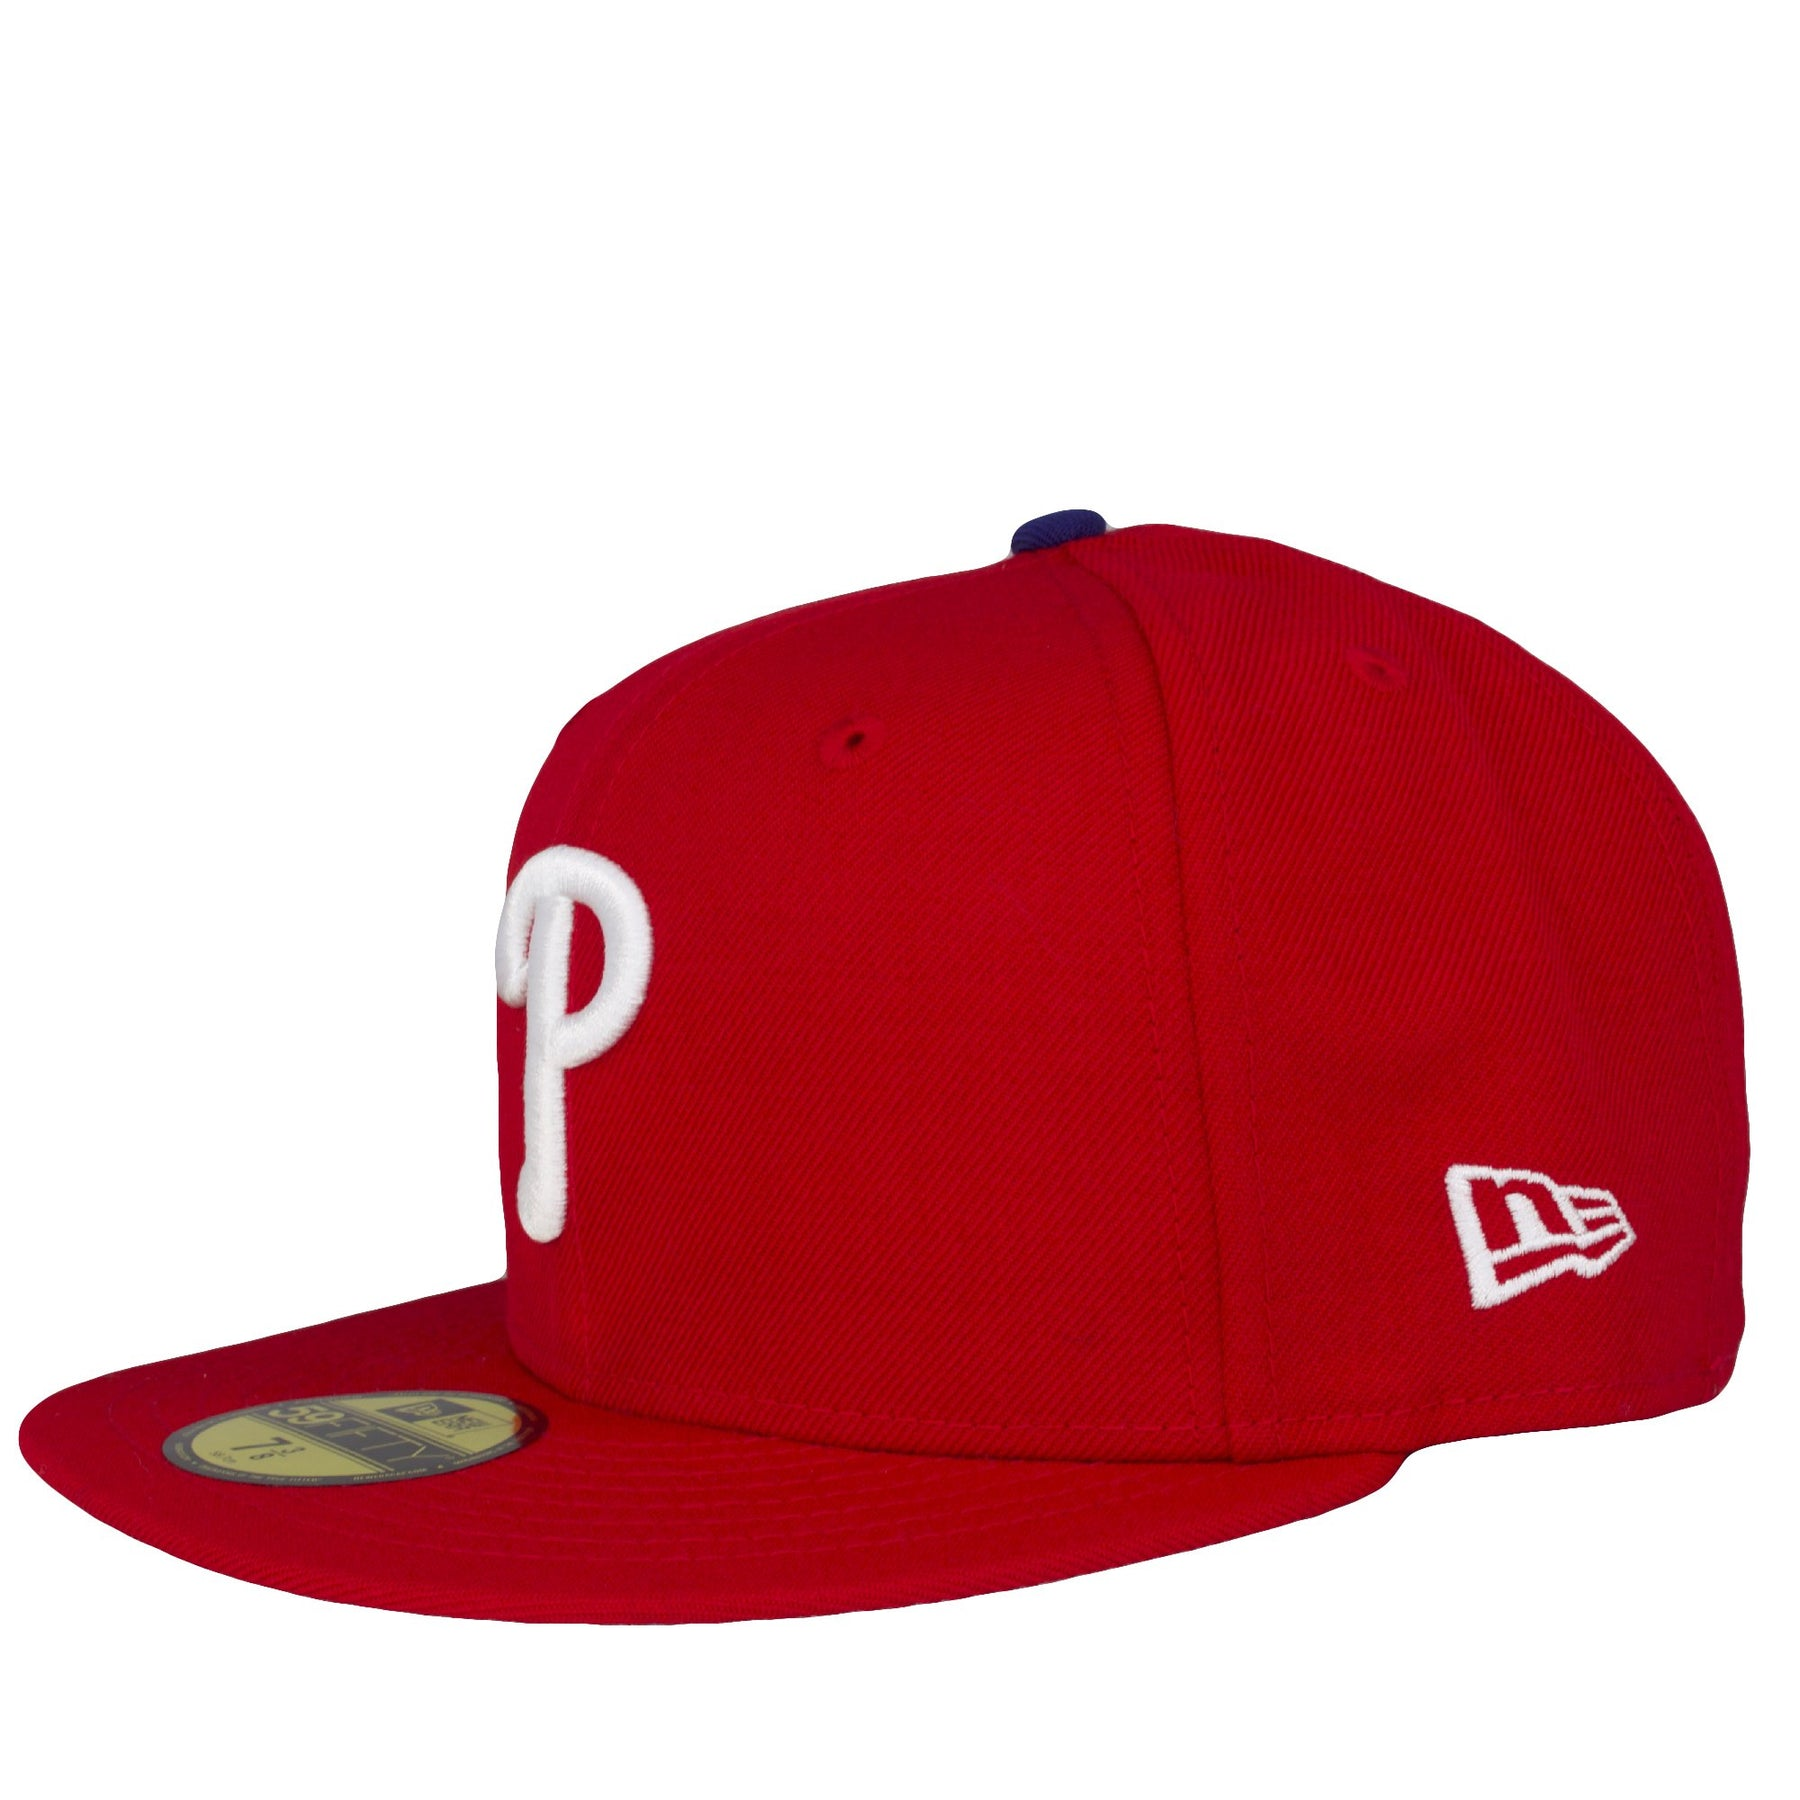 ... on the left side of the philadelphia phillies 2008 world series fitted  cap is the new ... 689e458970d